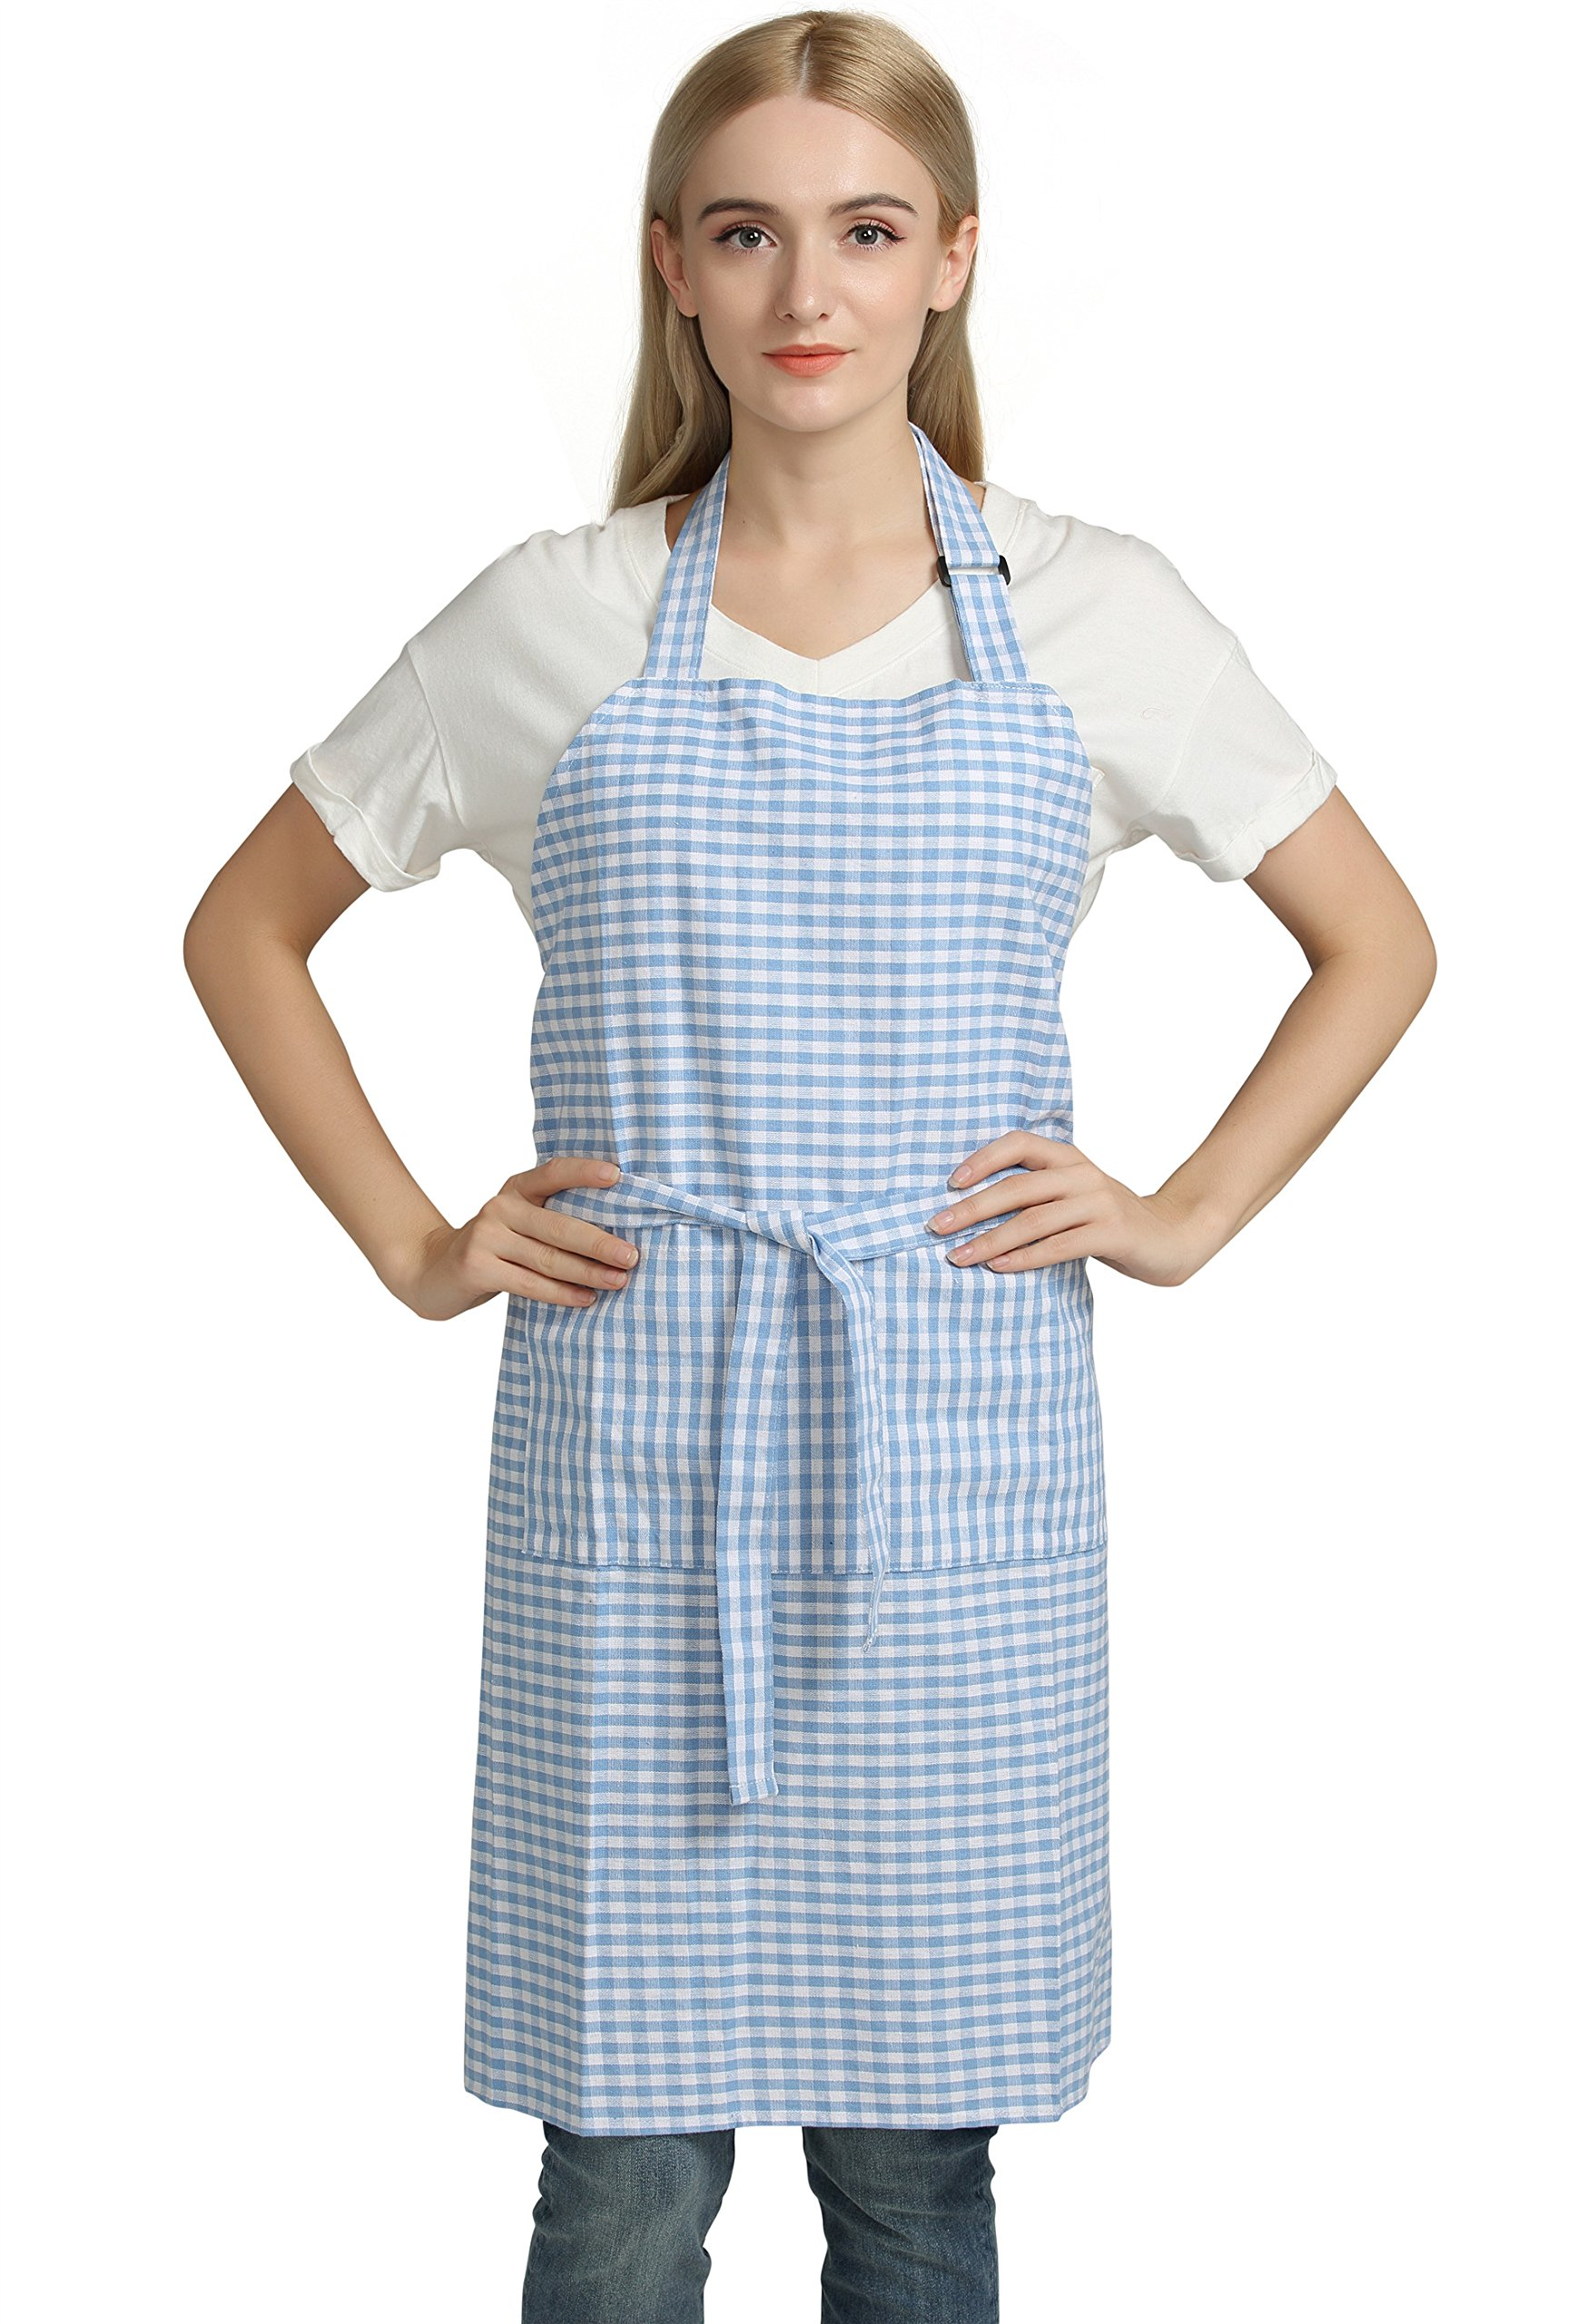 Vintage Gingham Kitchen Aprons Chef Bib Canvas Aprons Christmas Holiday Home Decorative 100% Pure Cotton Aprons in Large Size with Pockets with Pockets by Jennice House(Blue)